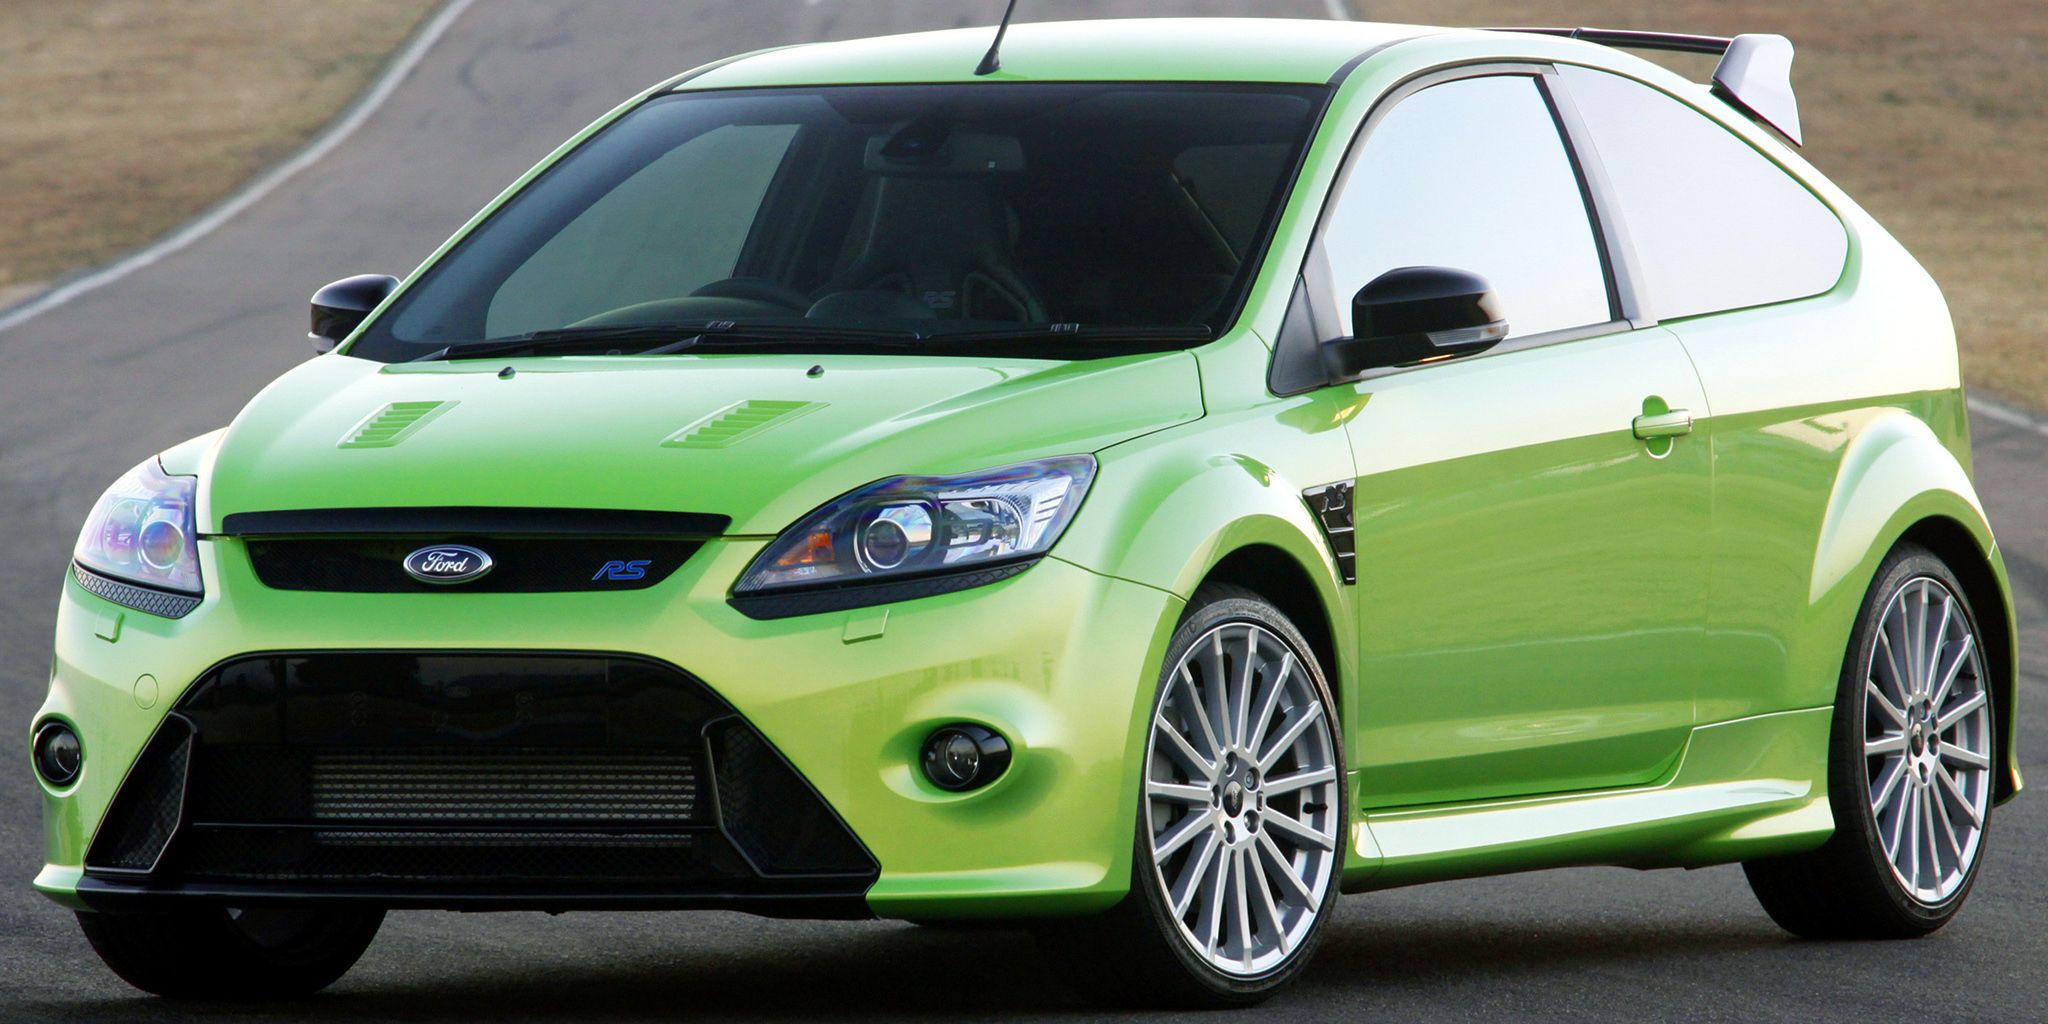 Why Buy a New Ford Focus RS When You Can Buy the Old One Instead?